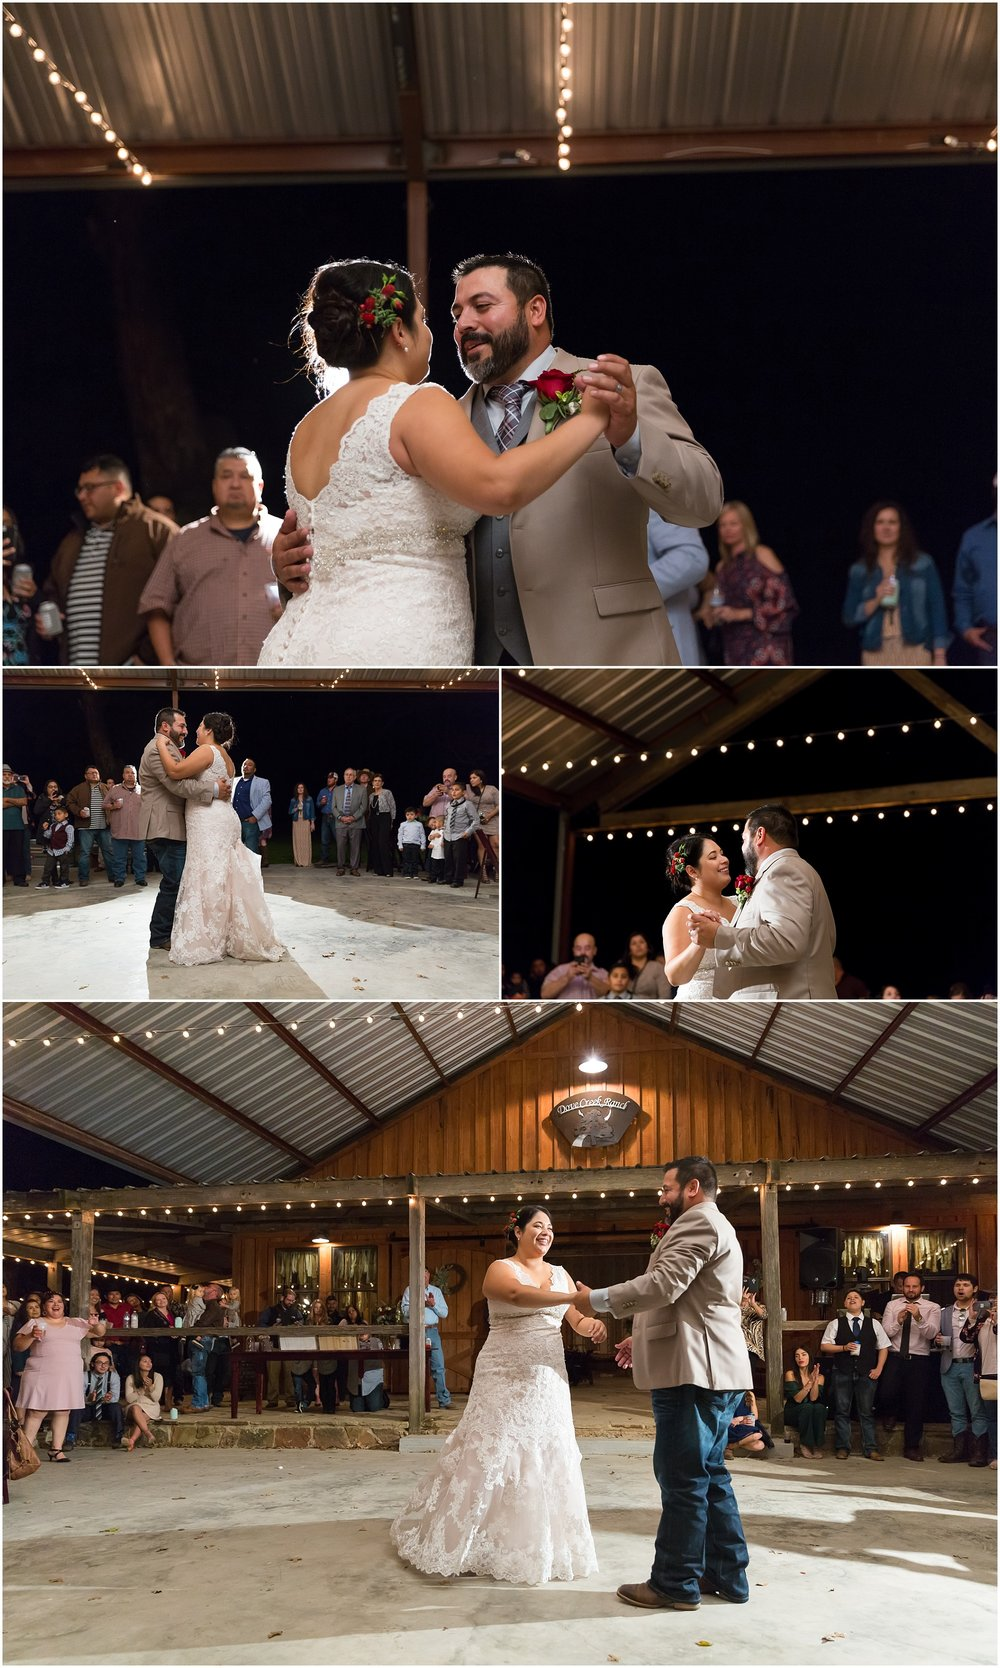 First dance as Mr. and Mrs. - Dove Creek Ranch in Dublin, Texas - Jason & Melaina Photography - www.jasonandmelaina.com